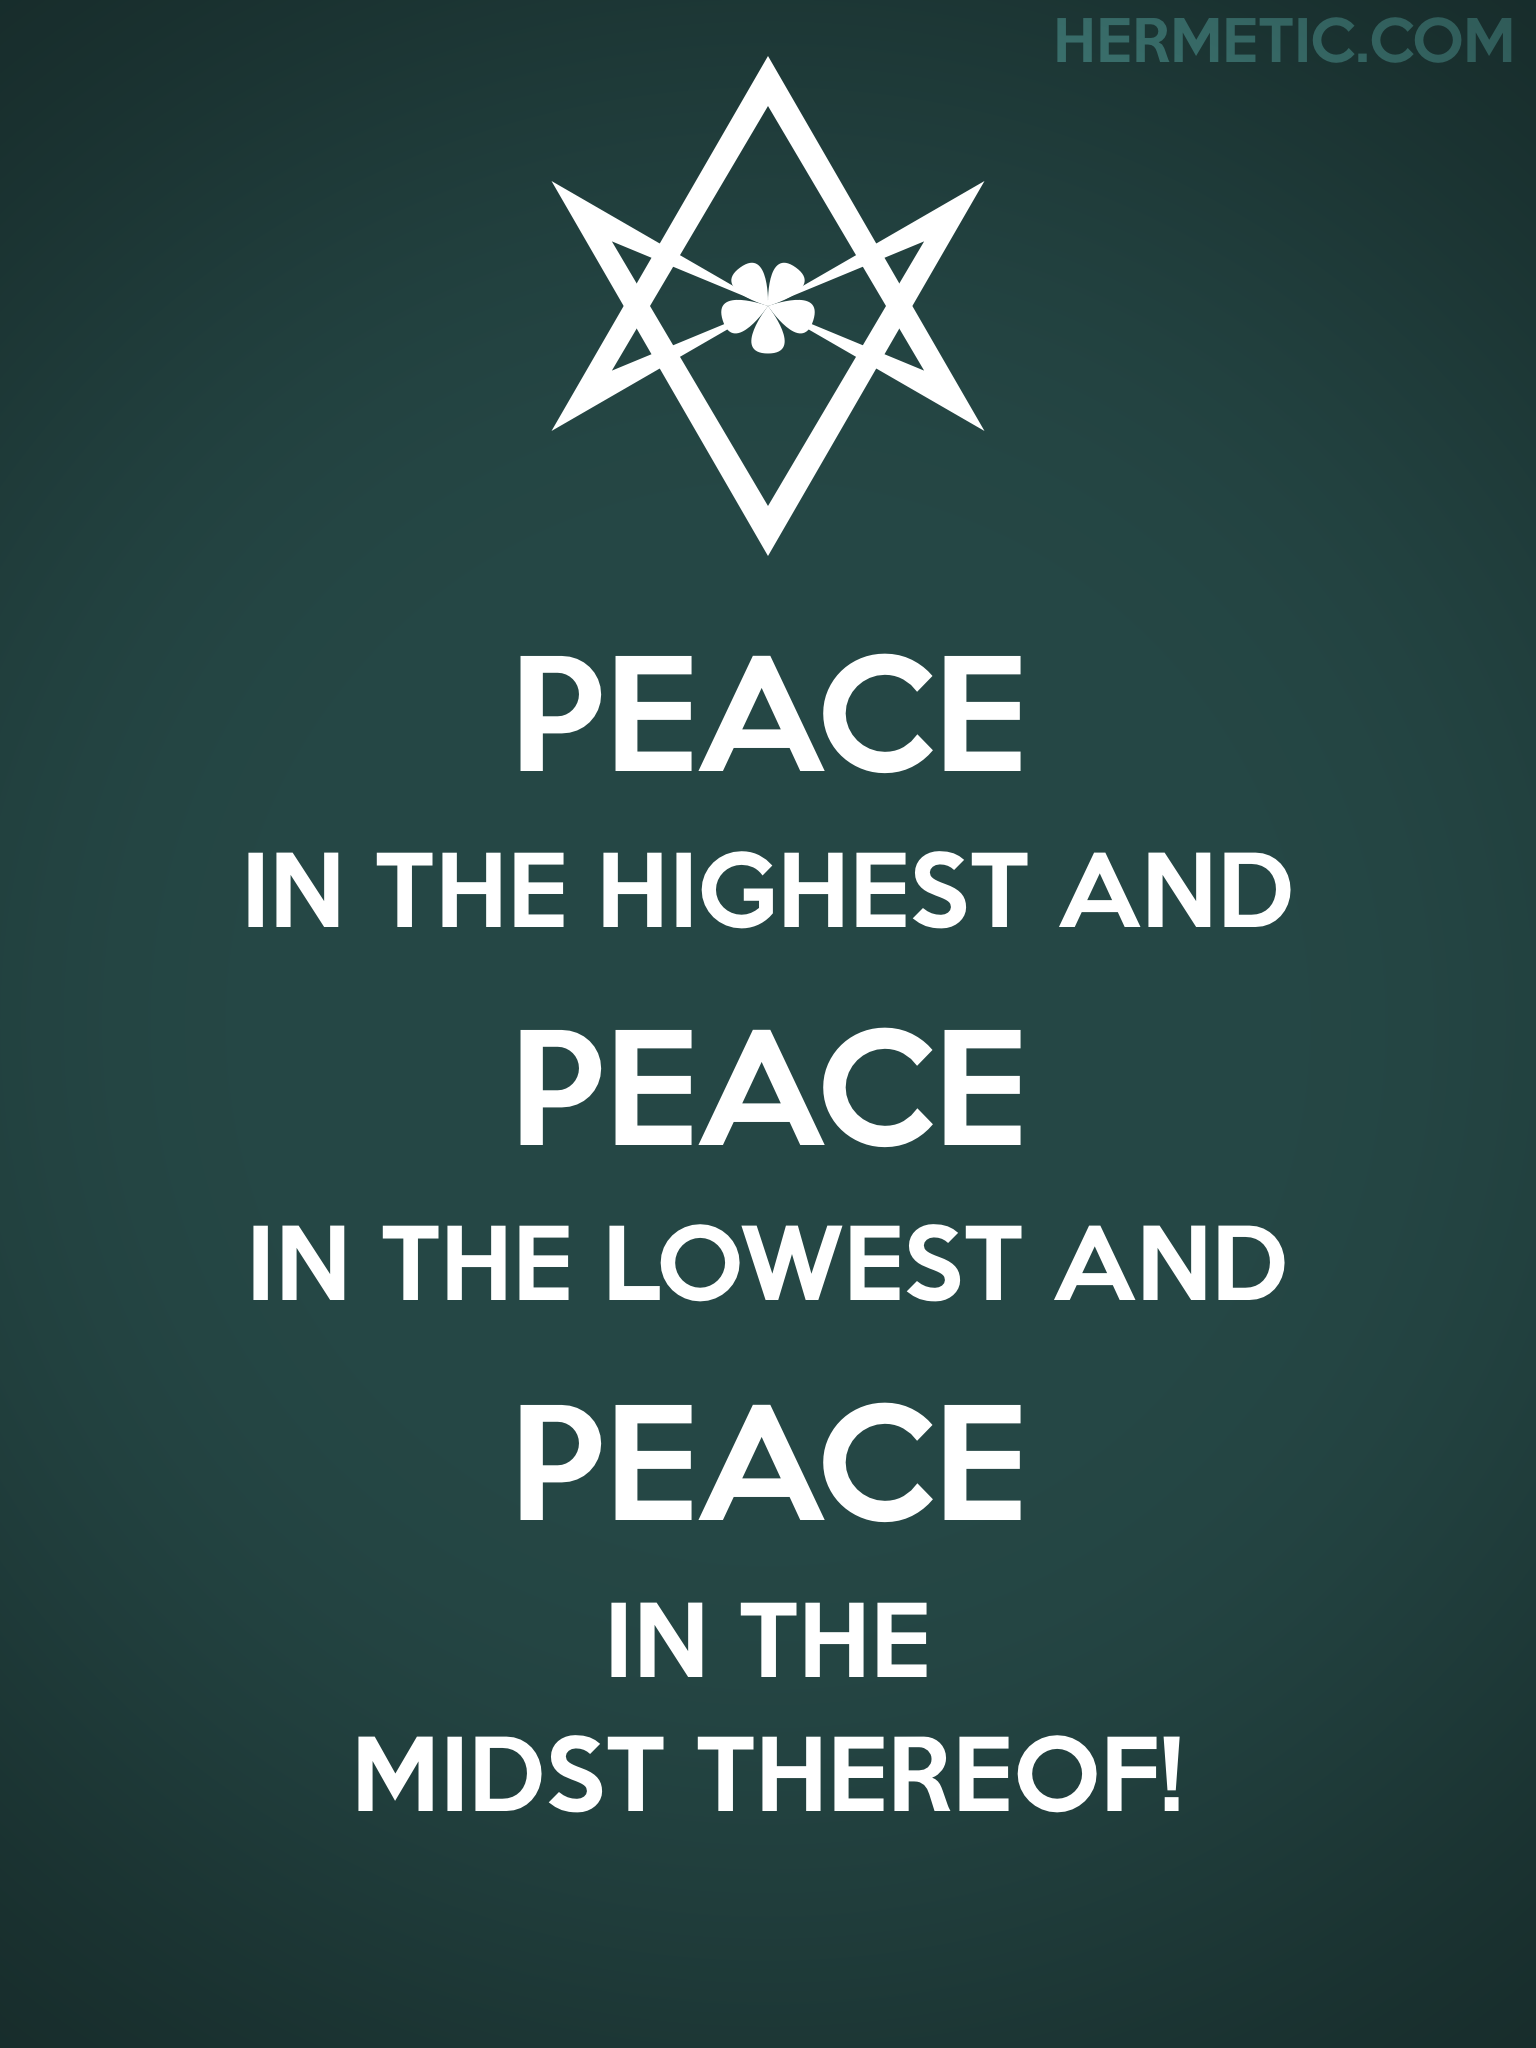 Unicursal PEACE PEACE PEACE Propaganda Poster from Hermetic Library Ministry of Information